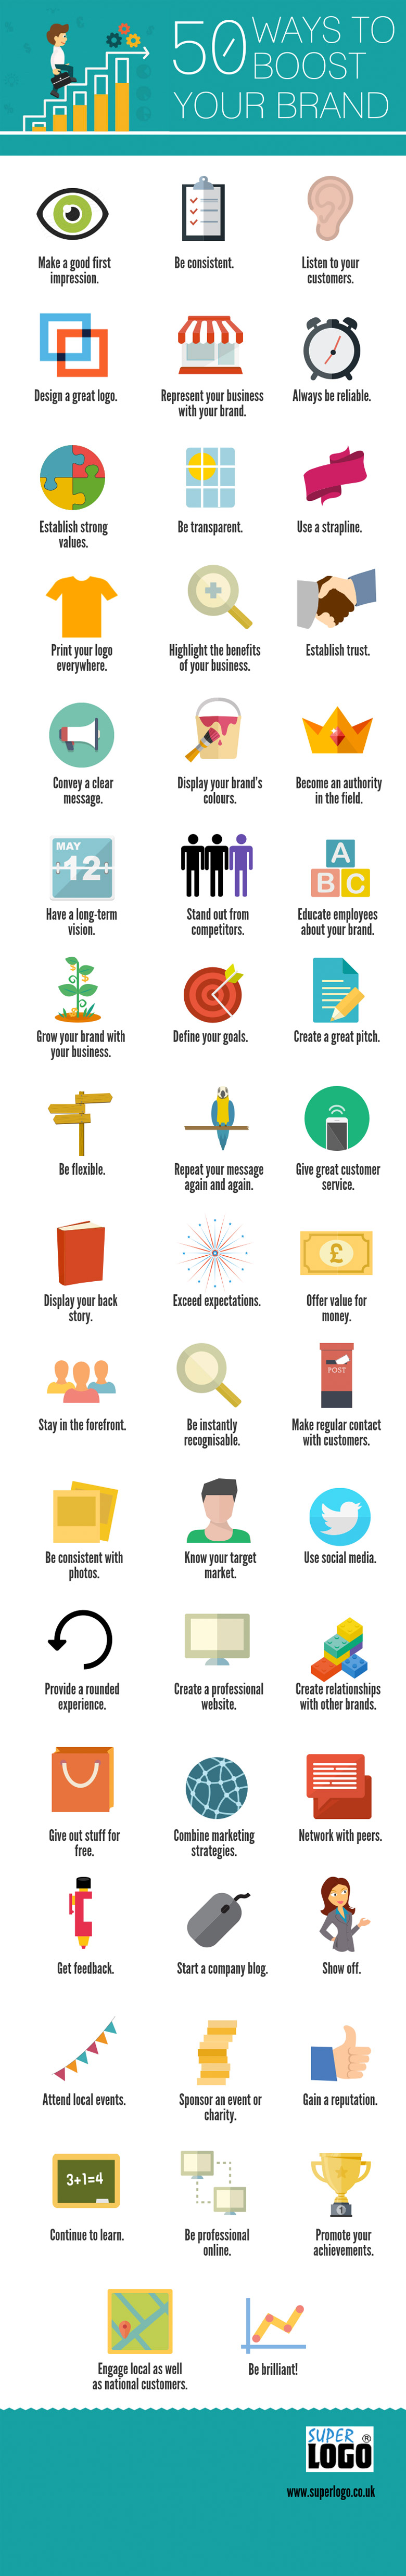 50 Ways To Boost Your Brand (Infographic)